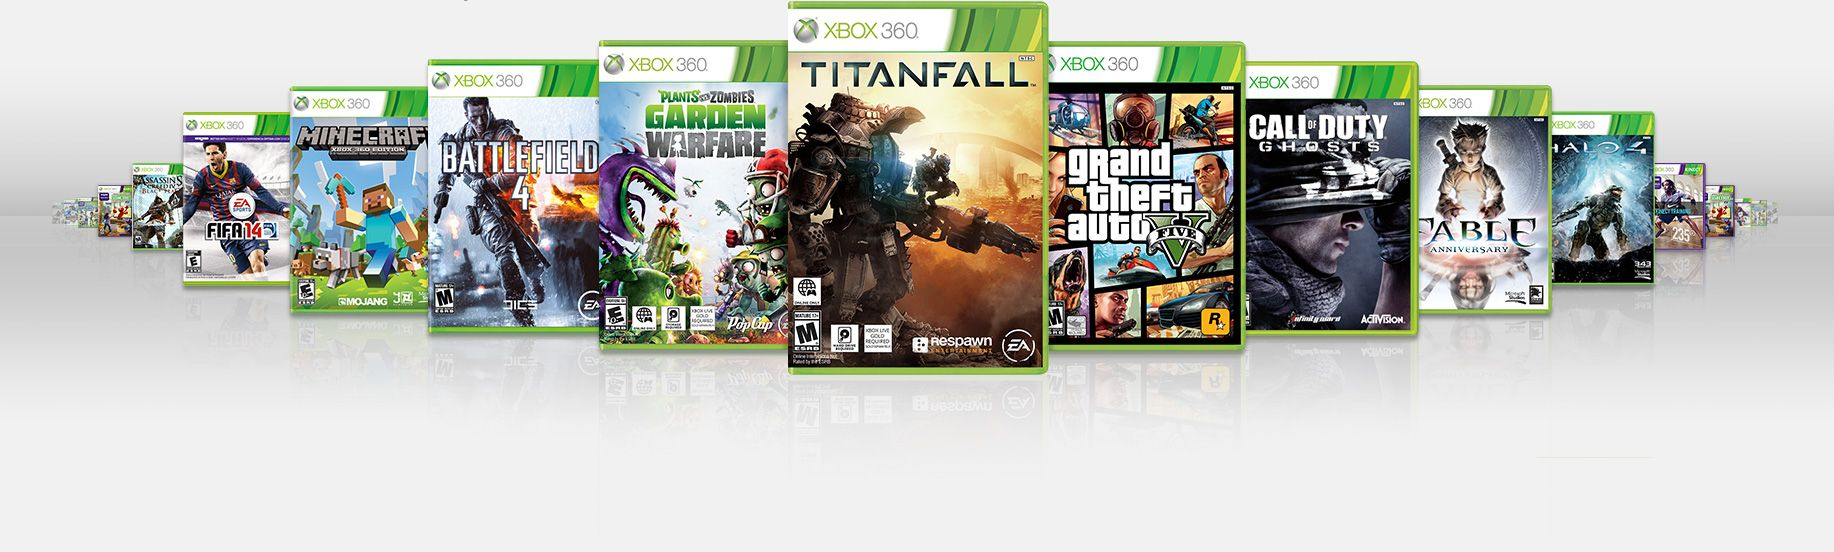 Xbox  Has Thousands Of Games VG  Pinterest Xbox Xbox - Minecraft xbox 360 los angeles map download